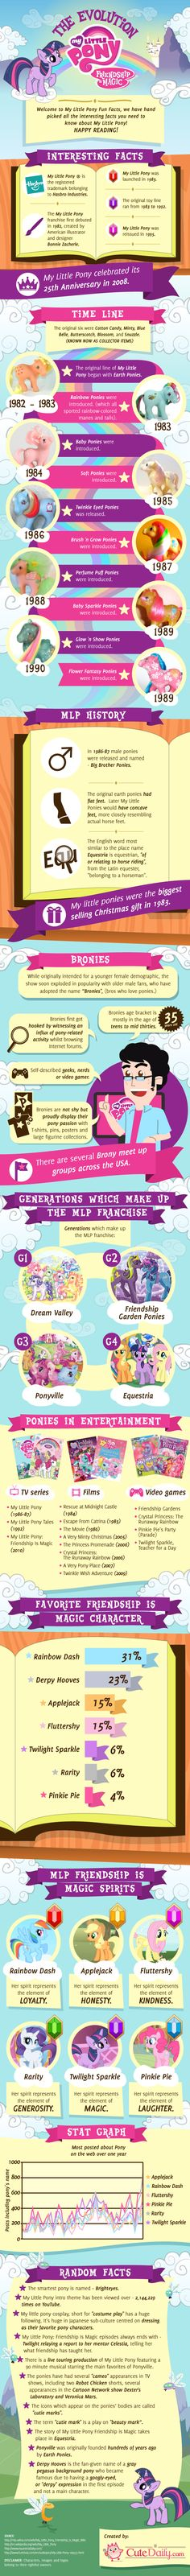 My Little Pony: The Evolution. Facts about ponies, unicorns, and Pegasus - And who wins in the main 6 of the MLPFIM (My Little Pony Friendship Is Magic)? My Little Pony Party, Mlp My Little Pony, My Little Pony Friendship, Little Poni, Twilight Sparkle, Fluttershy, Rainbow Dash, Mean Girls, Geek Stuff